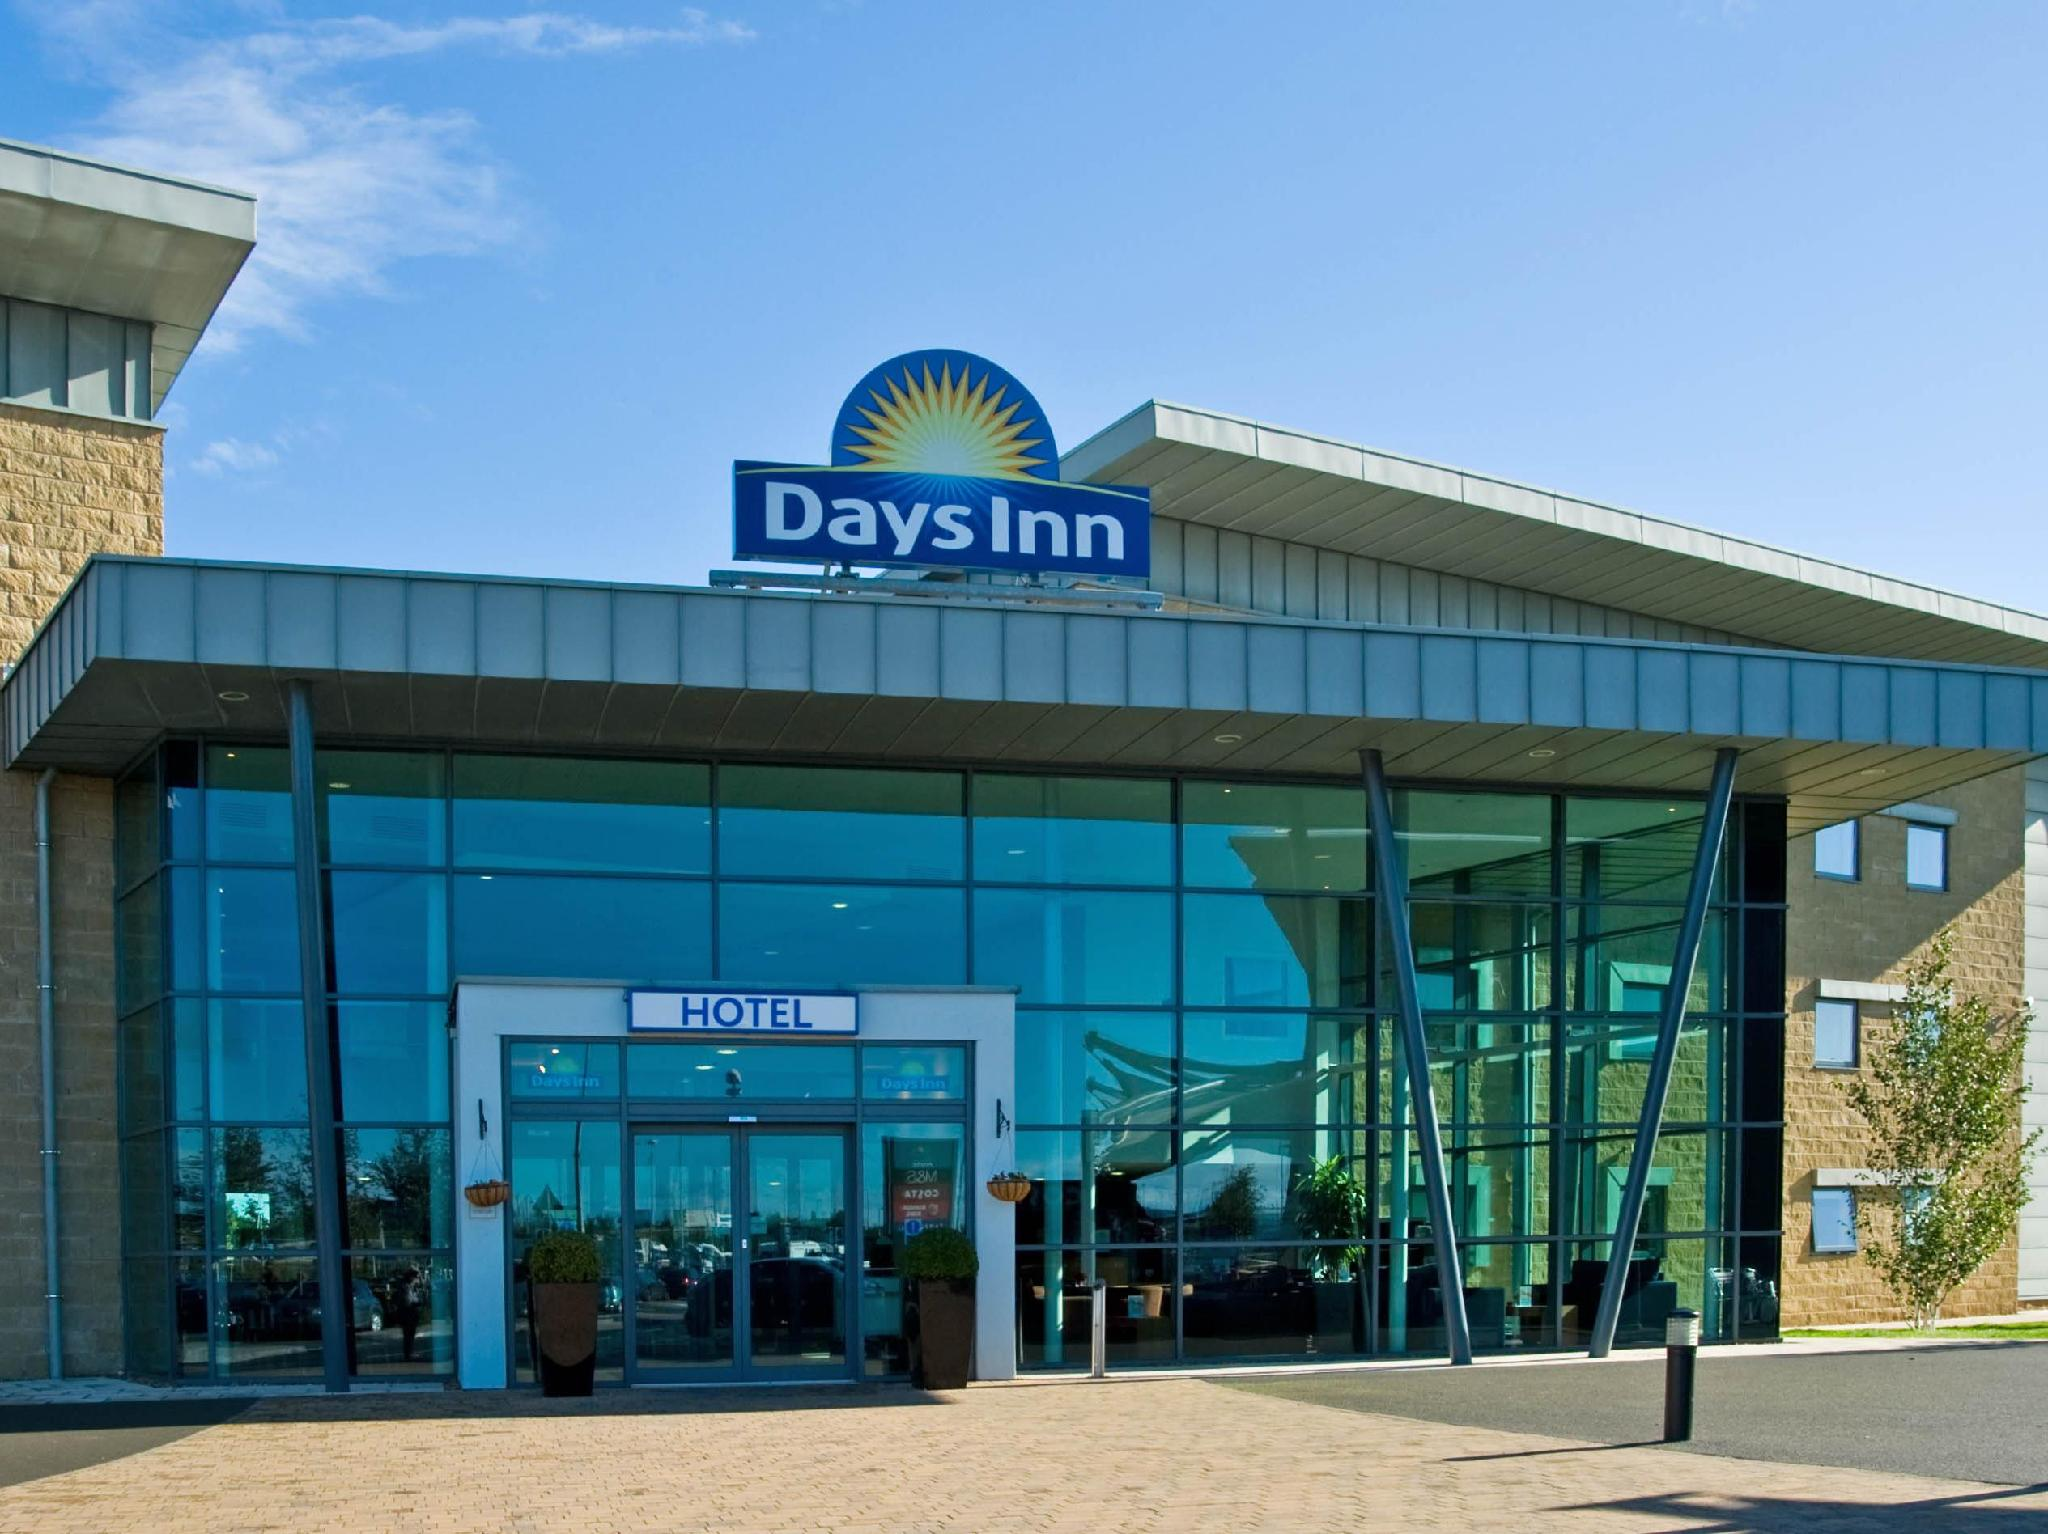 Days Inn Wetherby-Harrogate Hotel Wetherby - Main Entrance